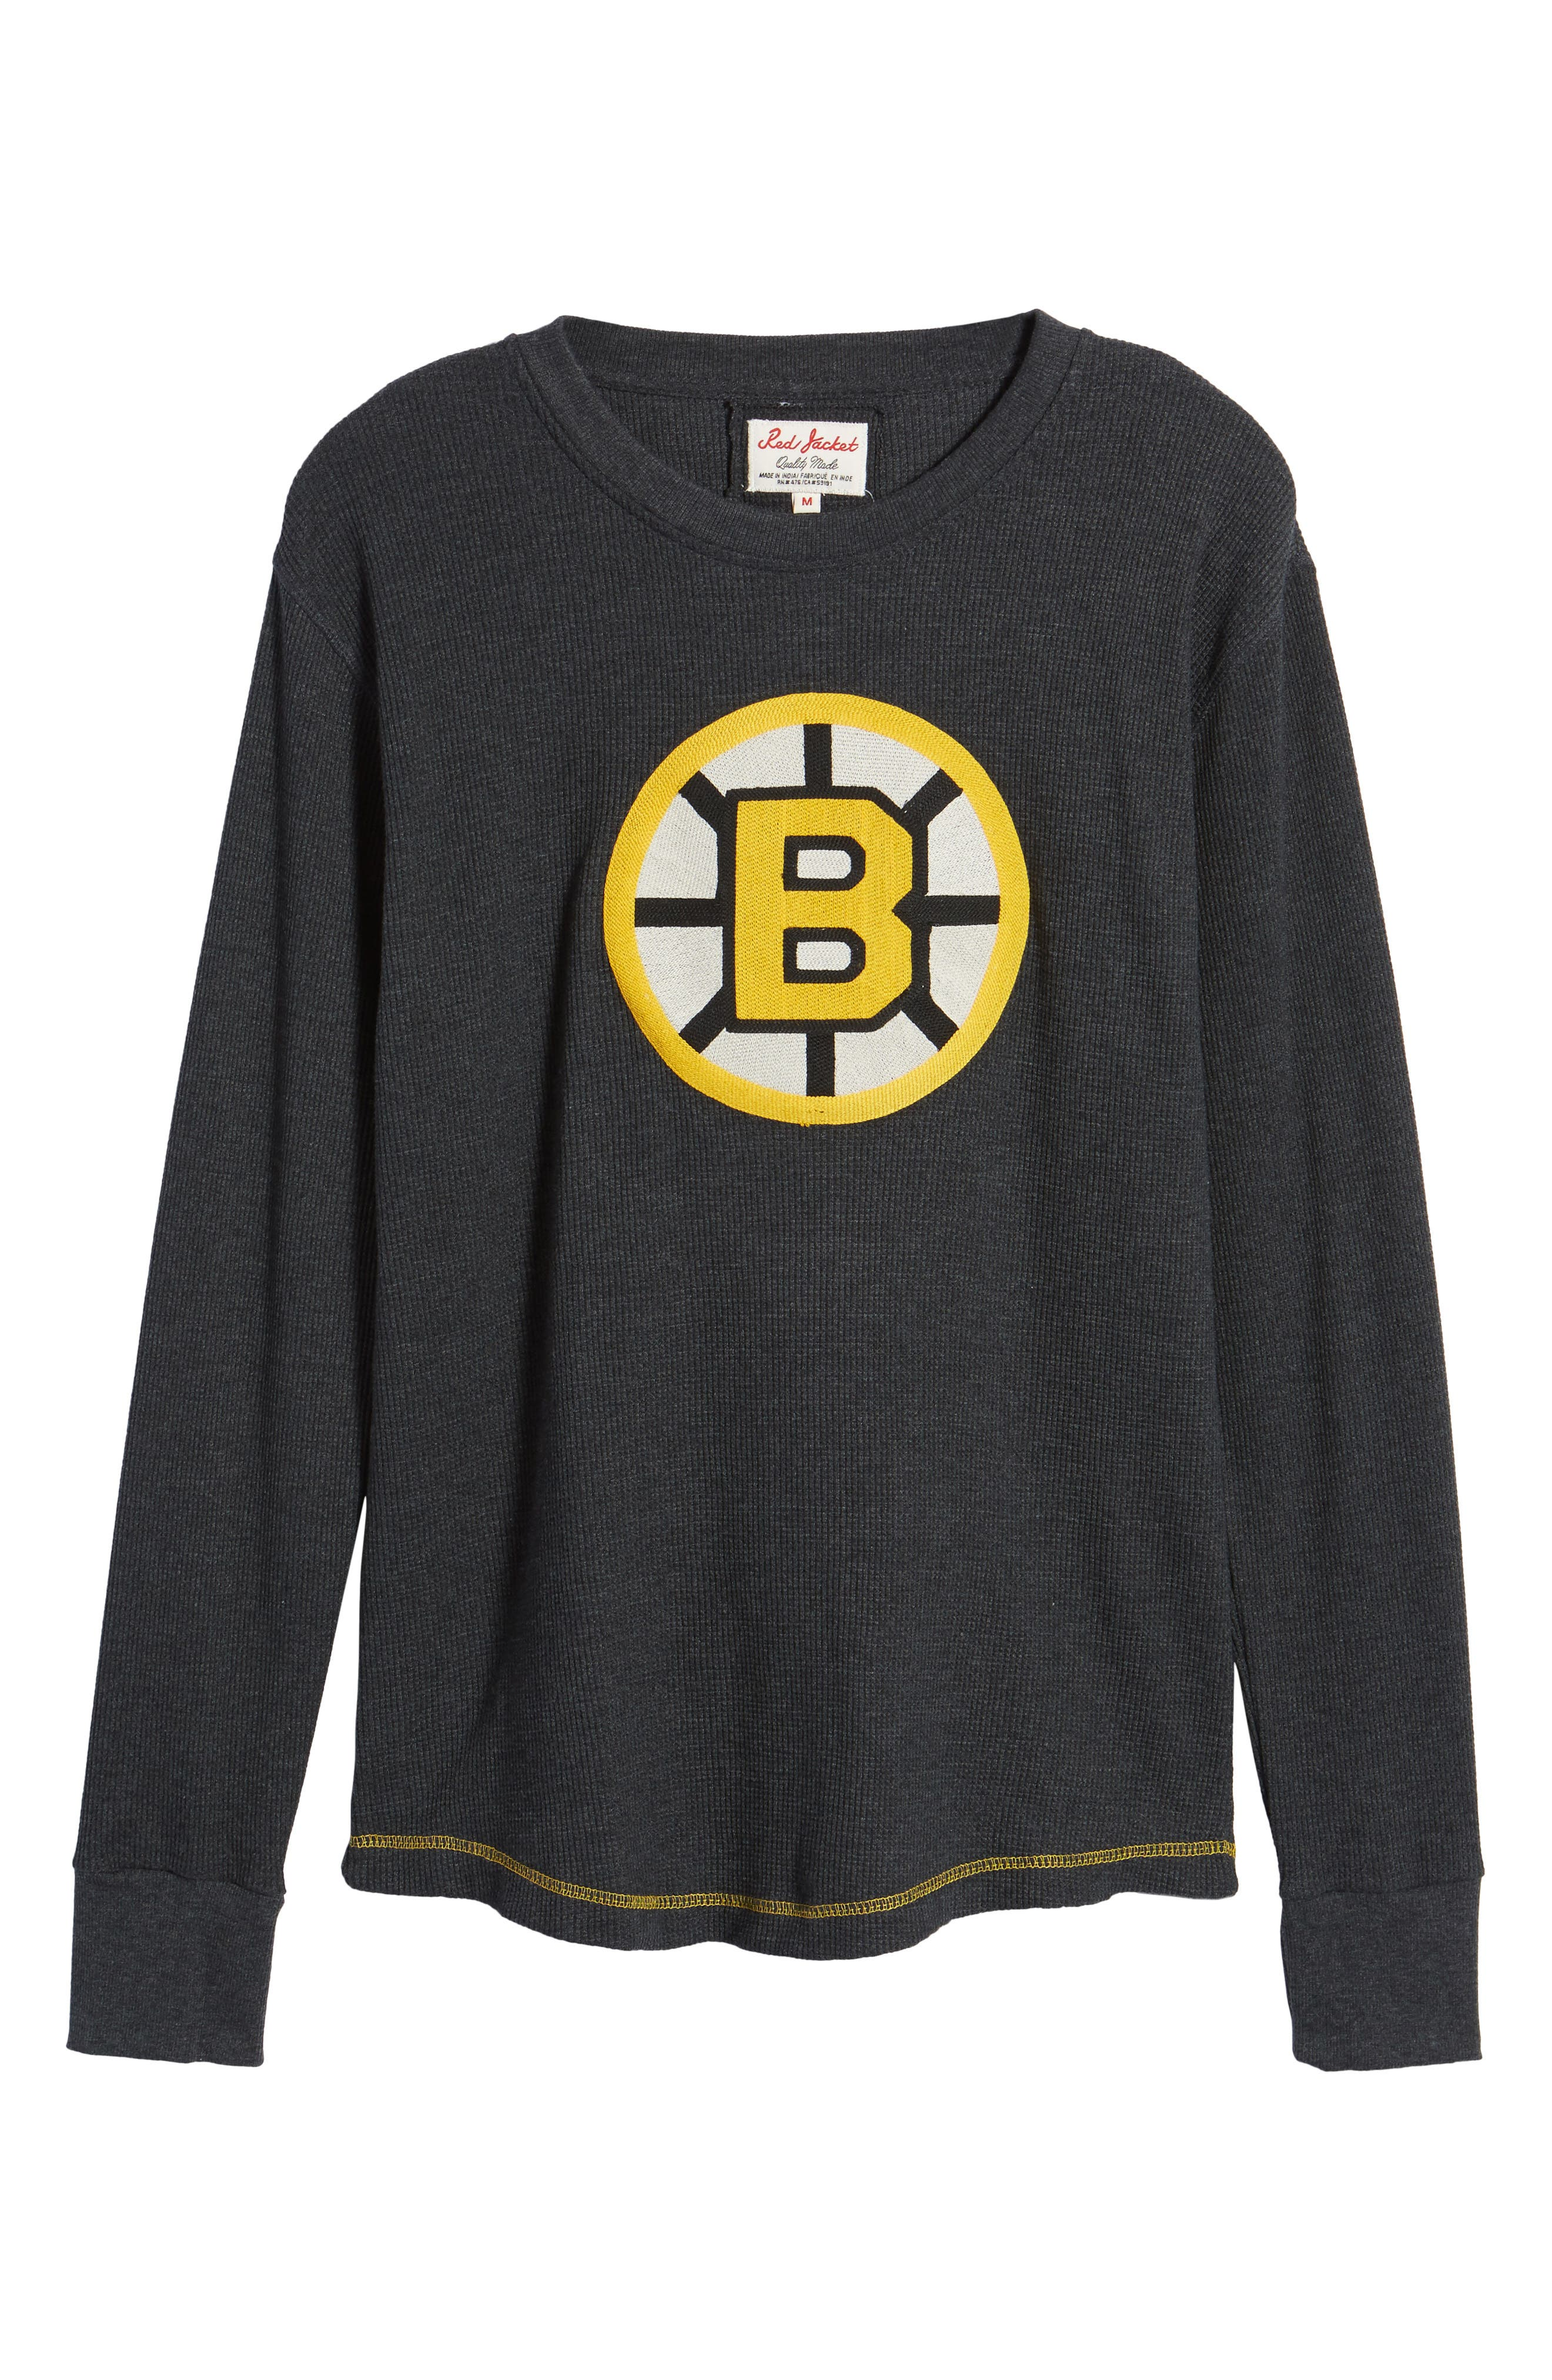 Boston Bruins Embroidered Long Sleeve Thermal Shirt,                             Alternate thumbnail 6, color,                             001